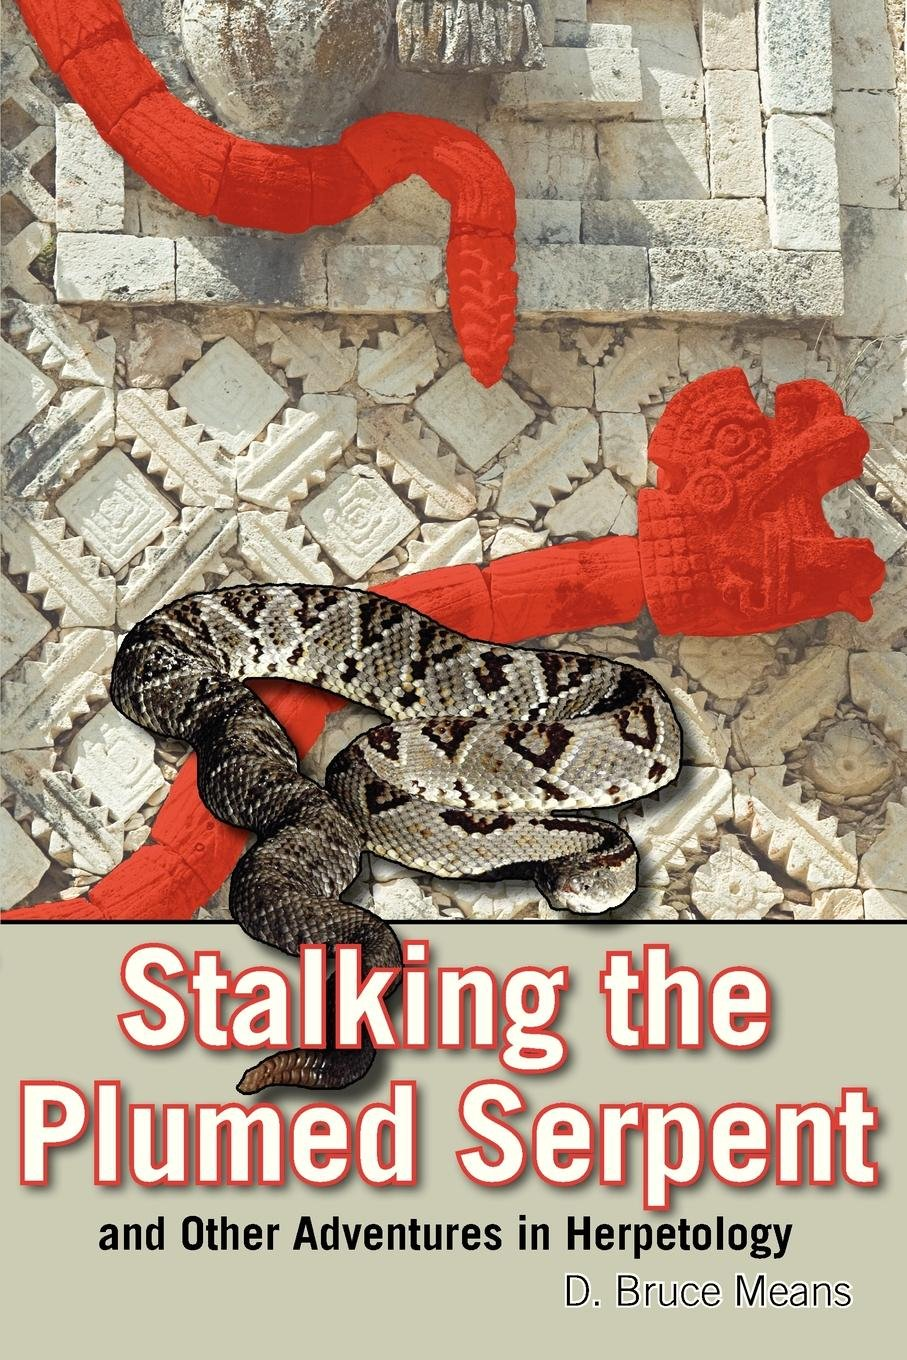 Download Stalking the Plumed Serpent and Other Adventures in Herpetology ebook